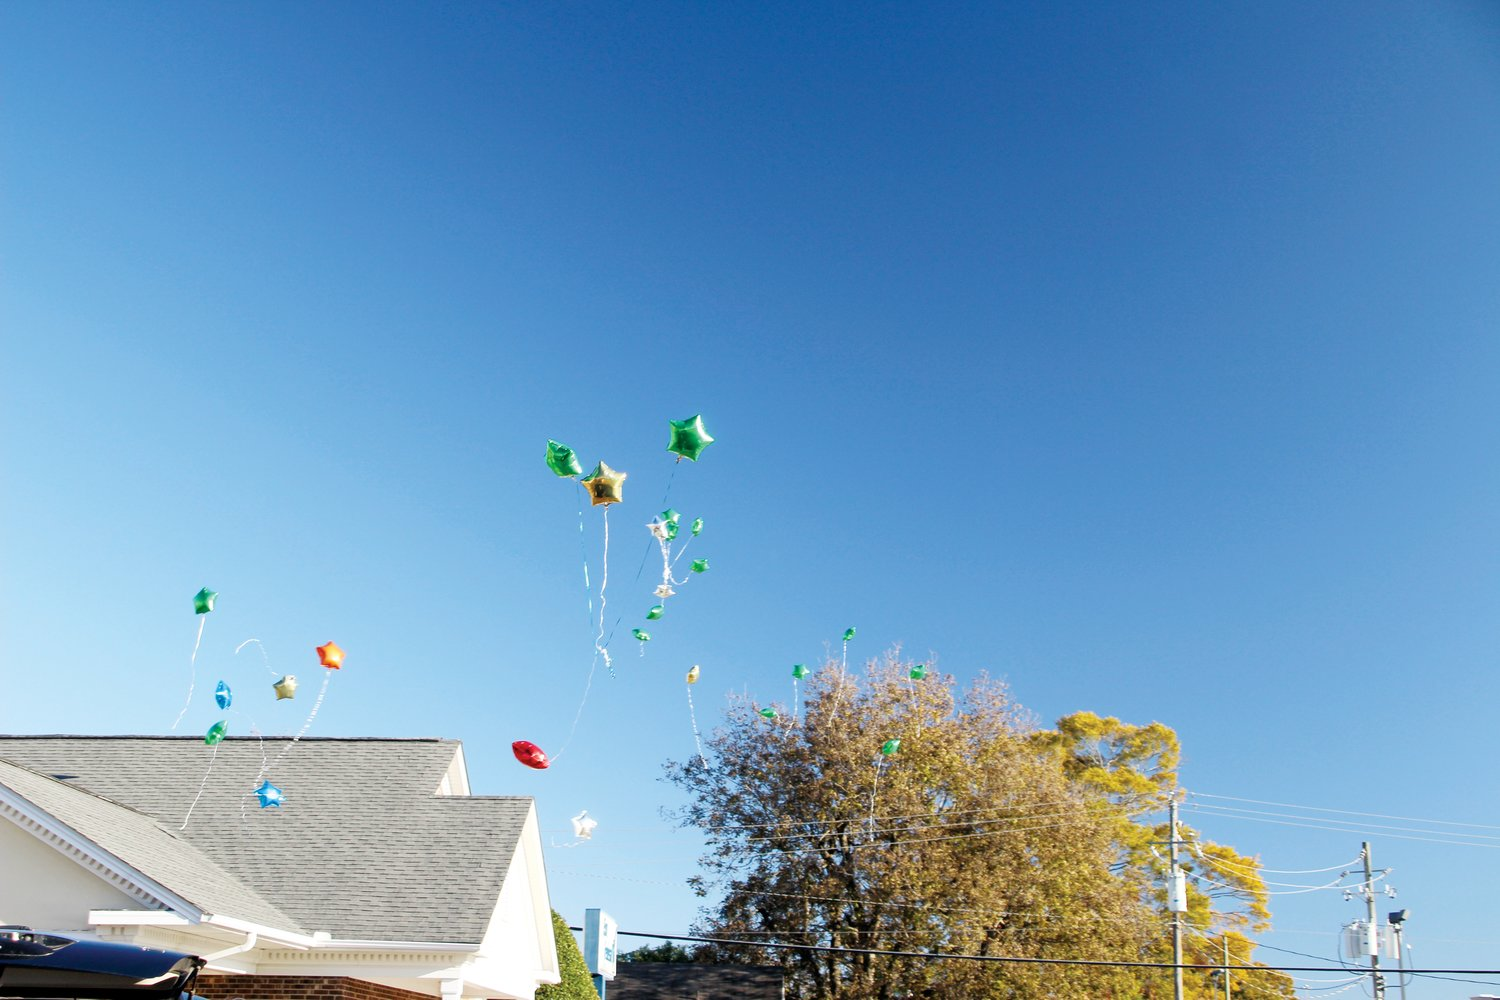 Balloons soar to a cloudless sky at a Cole Thomas memorial service Sunday.